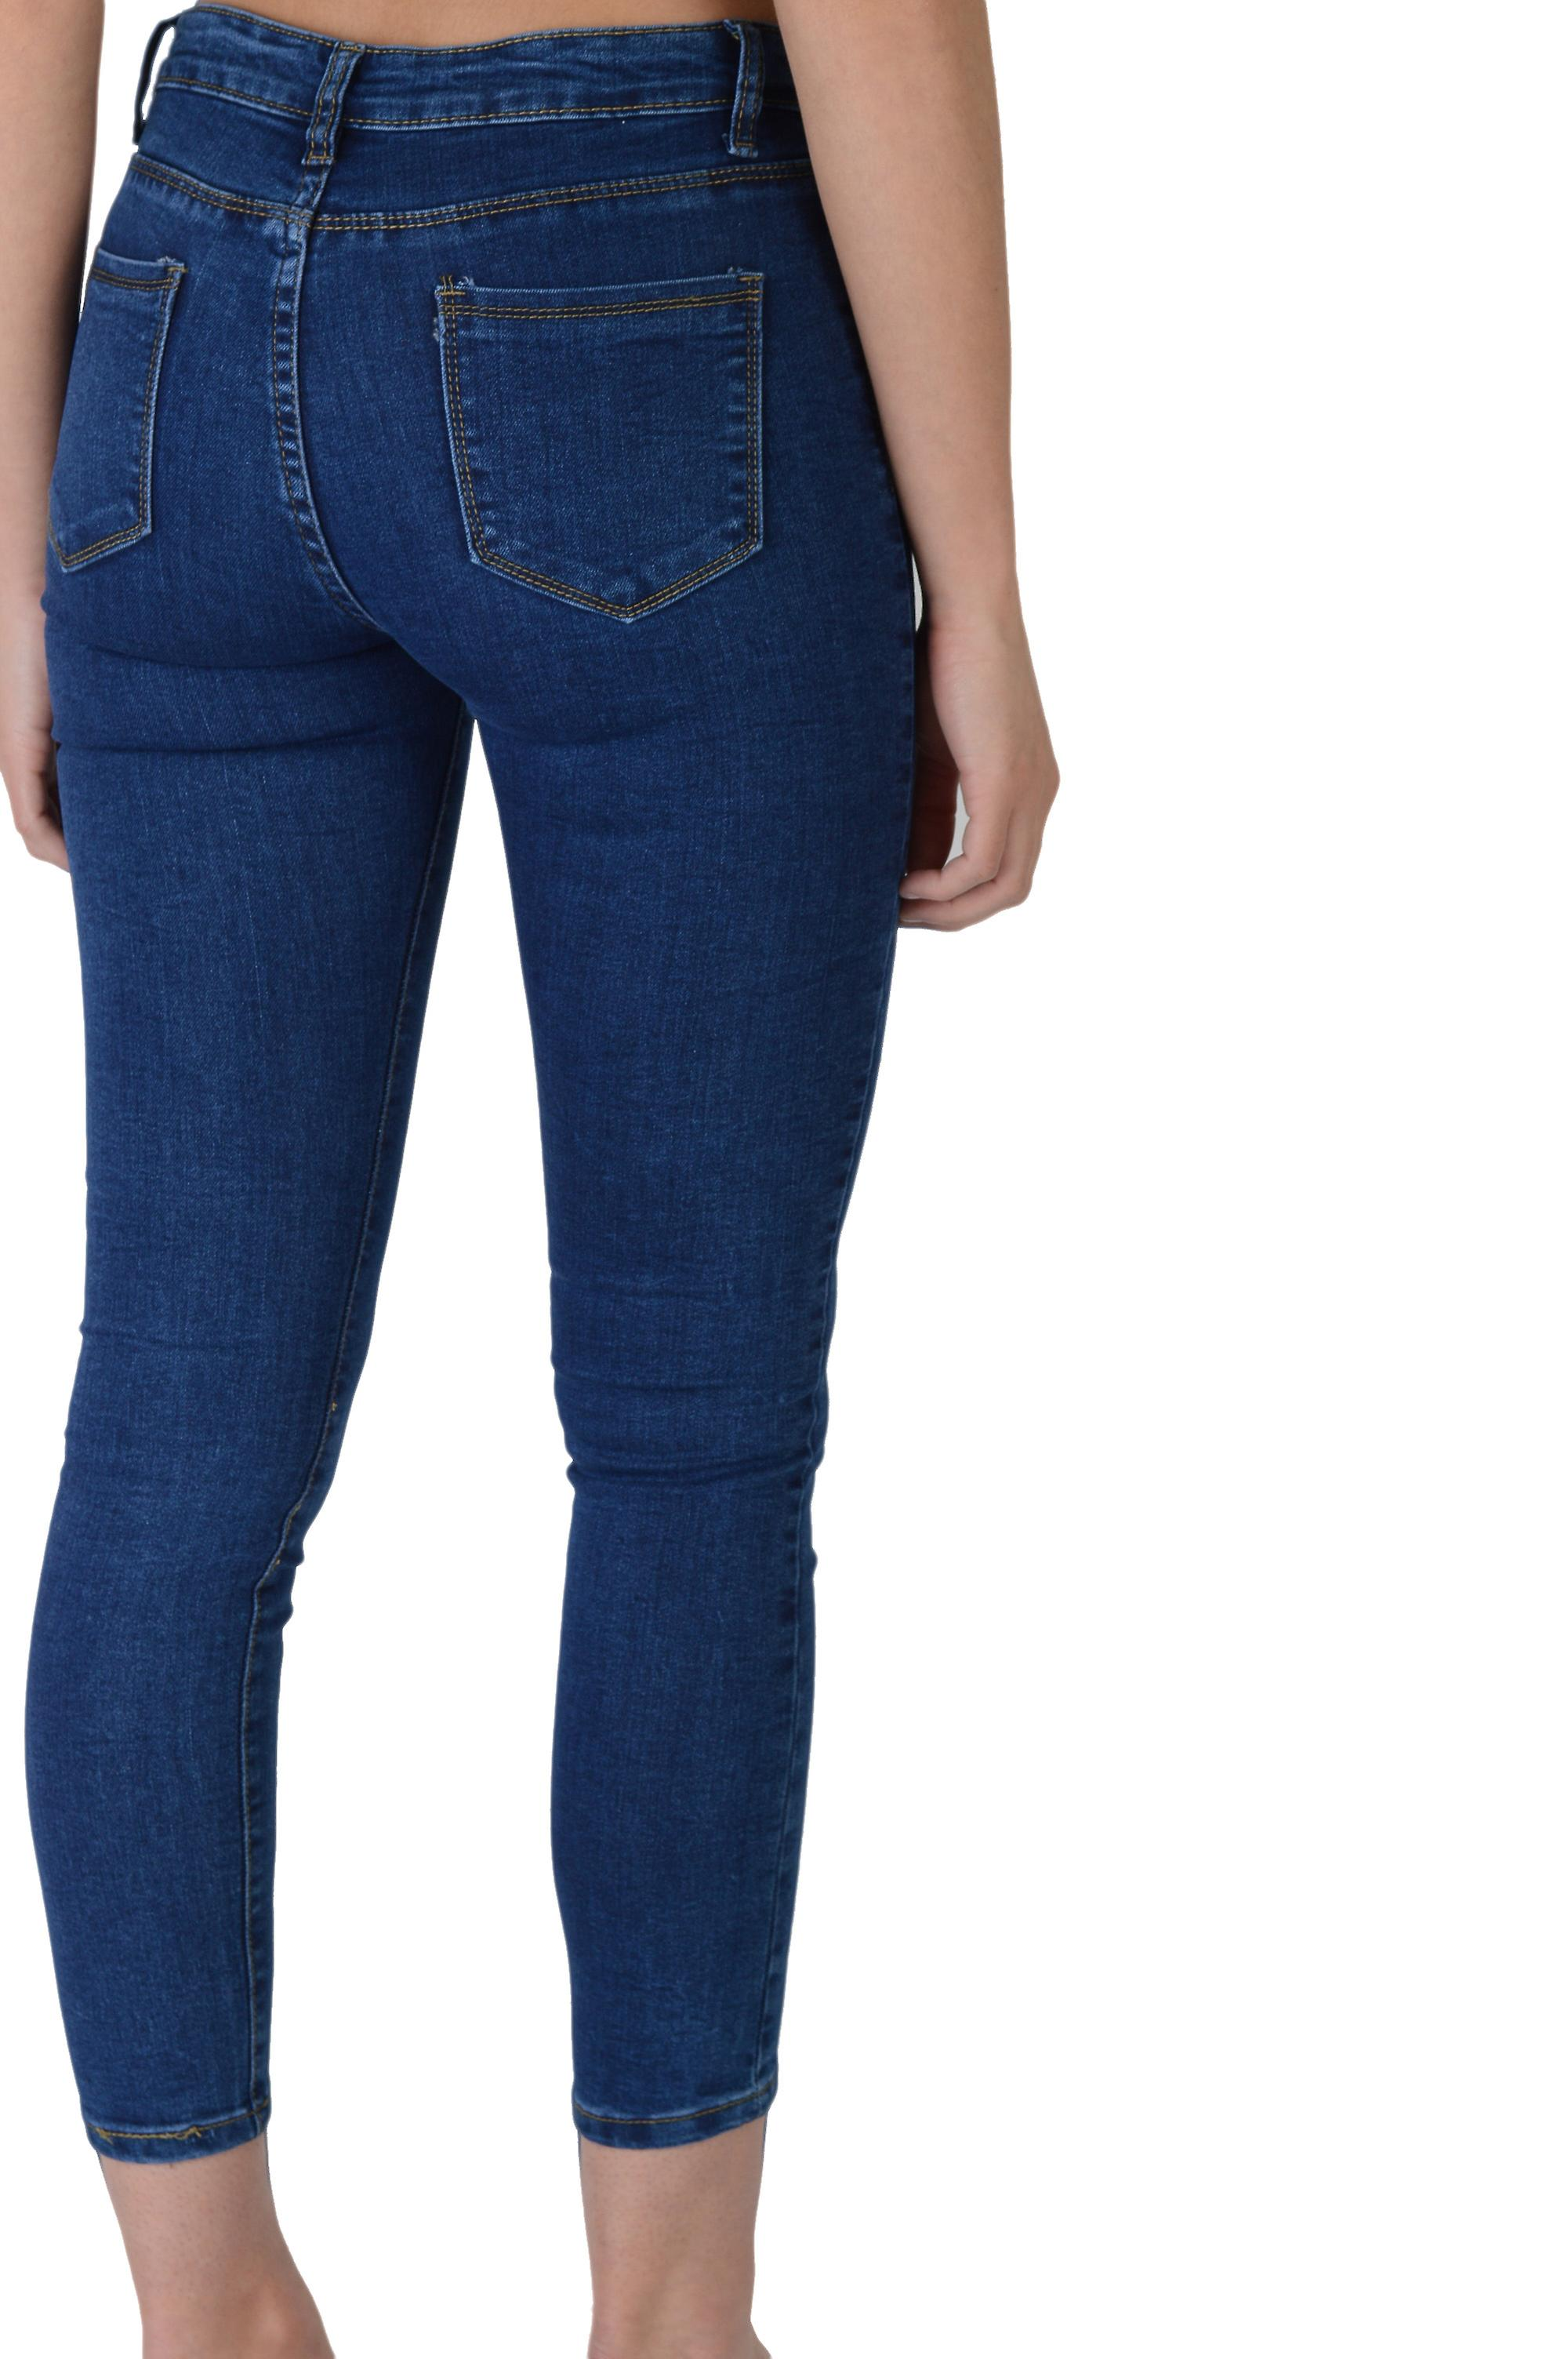 Lovemystyle High Waisted Blue Super Skinny Jeans - SAMPLE